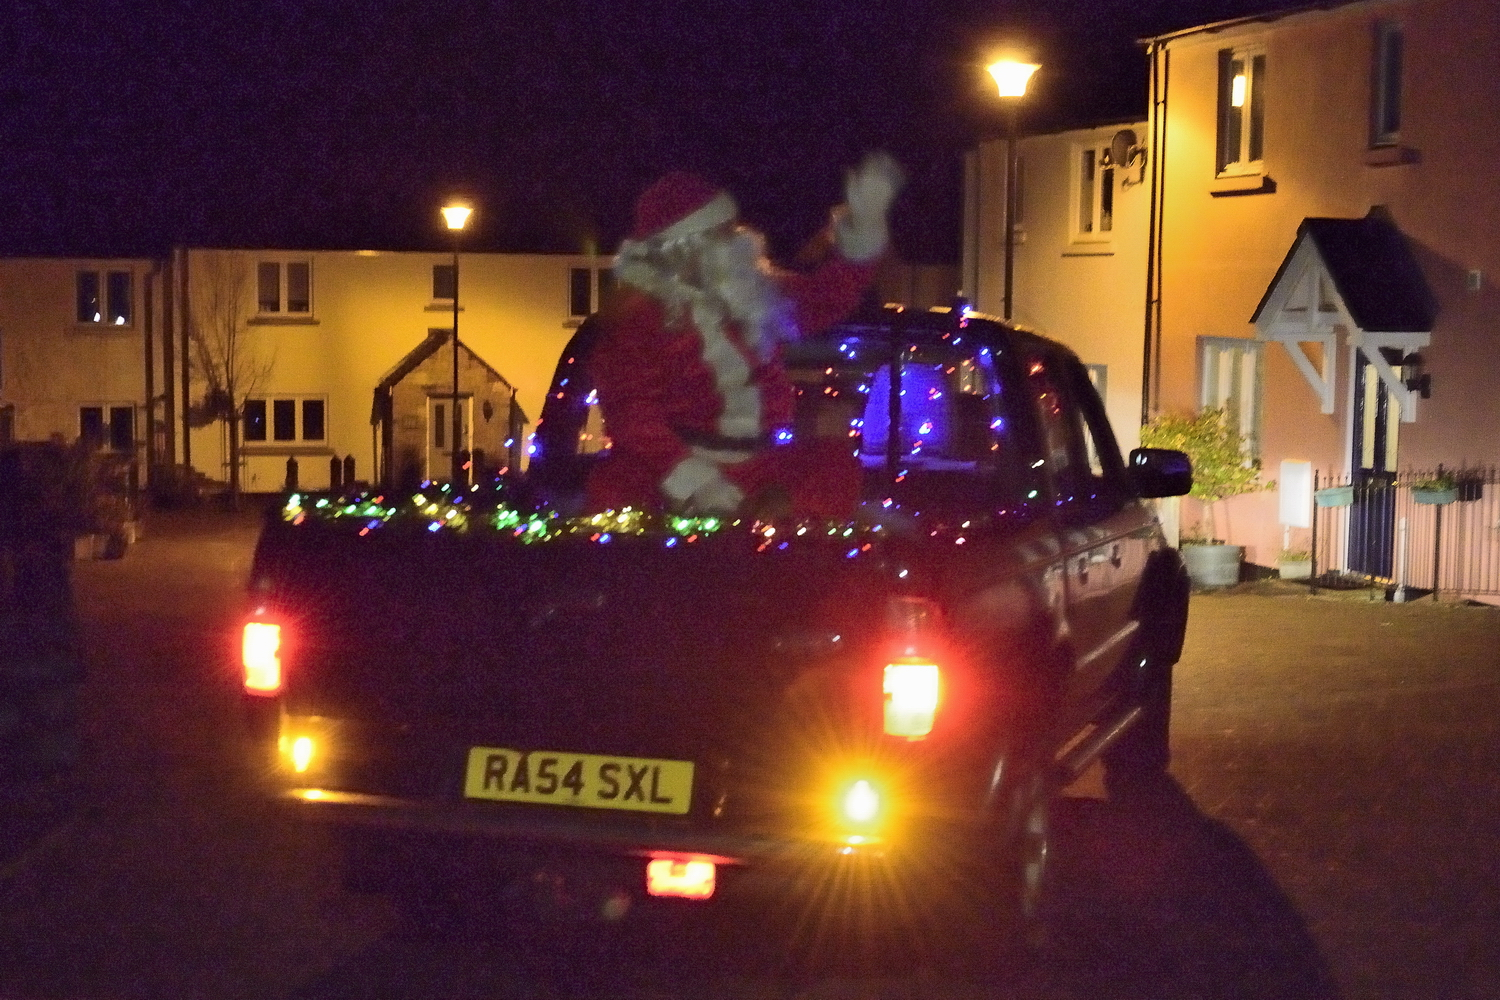 Santa riding in the pickup